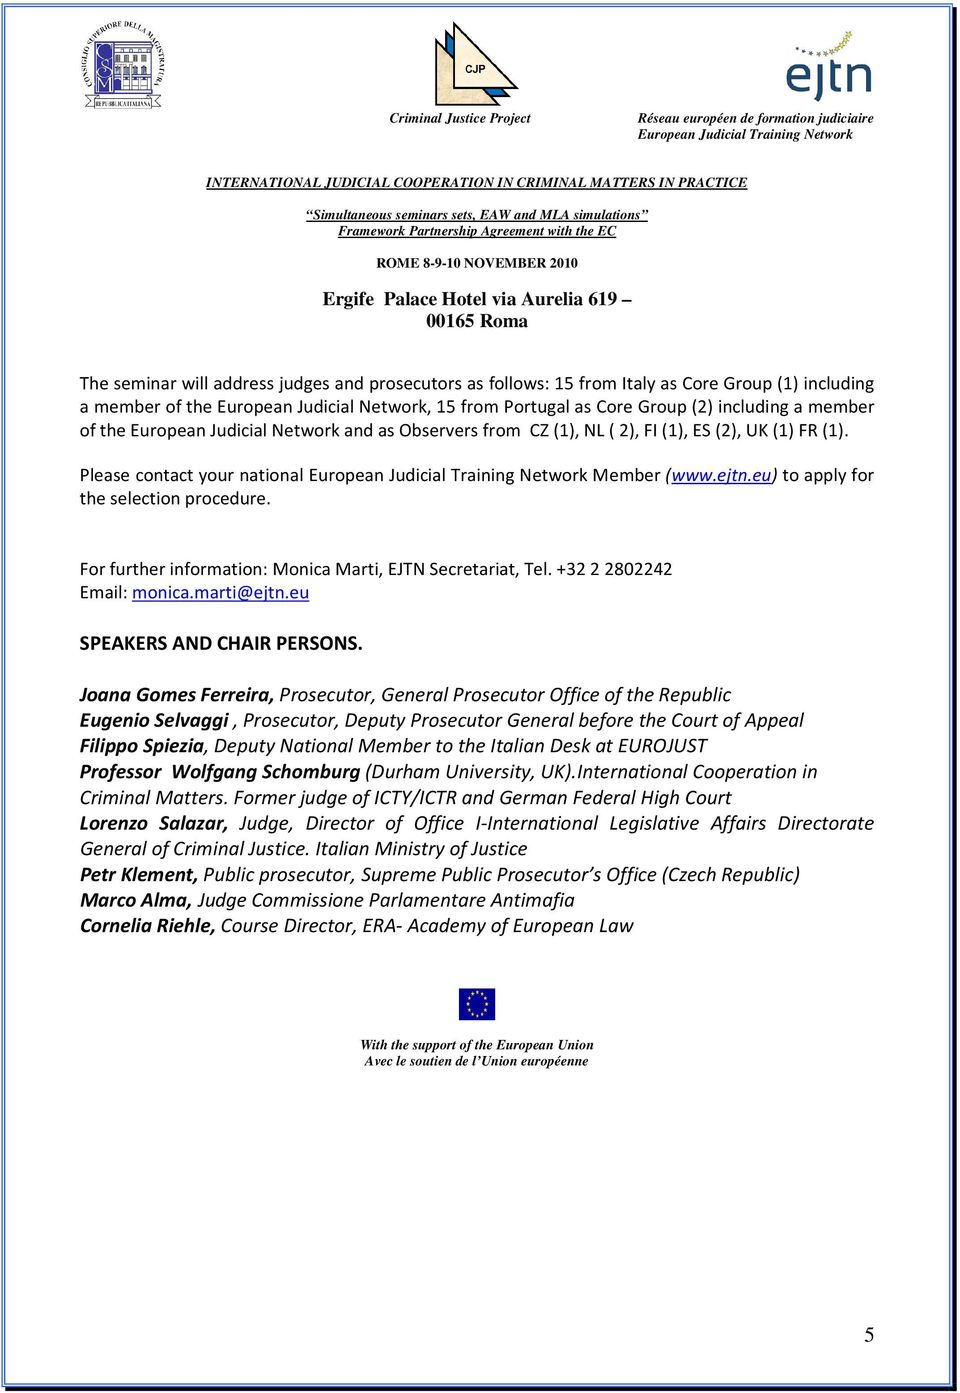 For further information: Monica Marti, EJTN Secretariat, Tel. +32 2 2802242 Email: monica.marti@ejtn.eu SPEAKERS AND CHAIR PERSONS.